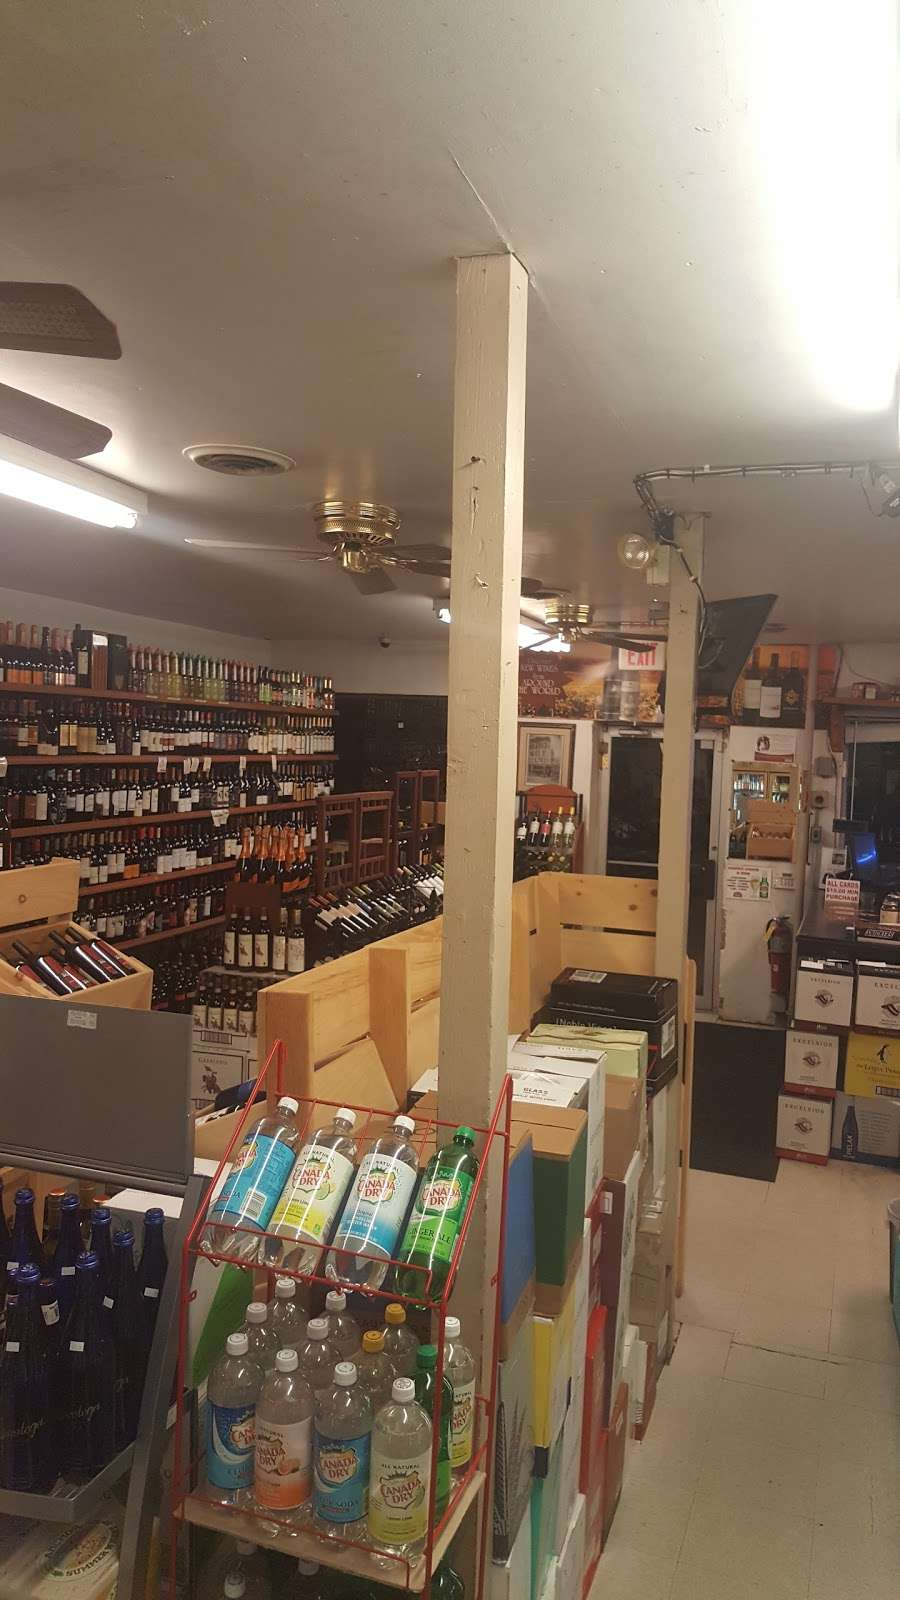 Daniel Liquors & Wines Inc - store  | Photo 6 of 10 | Address: 87 Garden St, Hoboken, NJ 07030, USA | Phone: (201) 656-9997